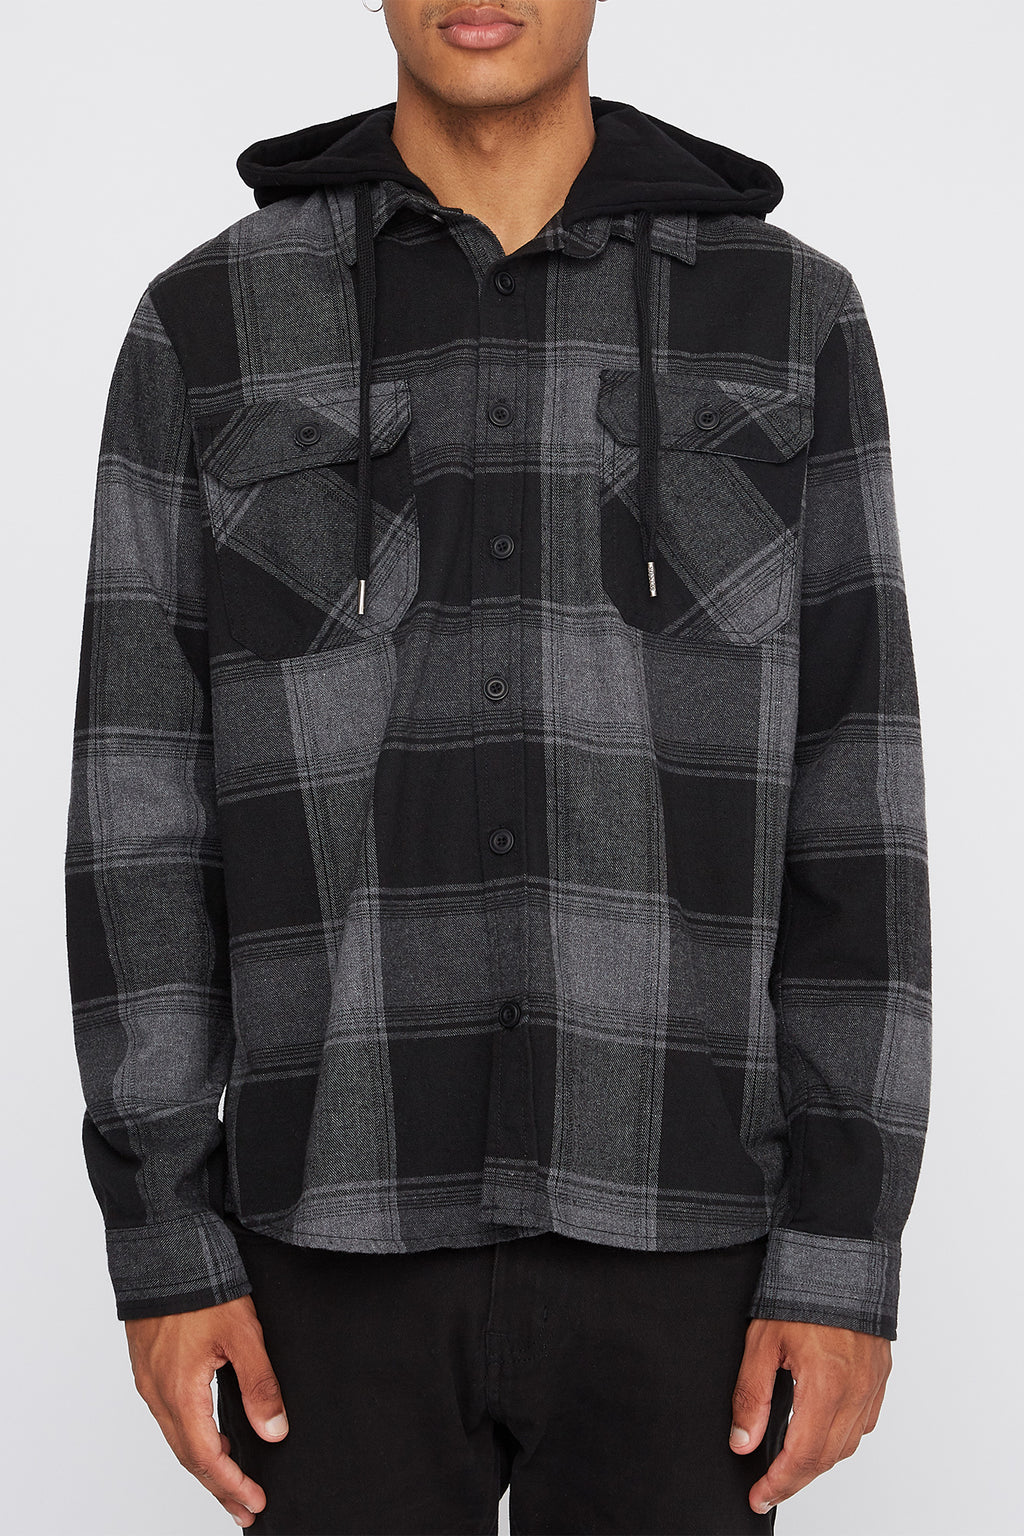 West49 Mens Hooded Flannel Plaid Button-Up Shirt